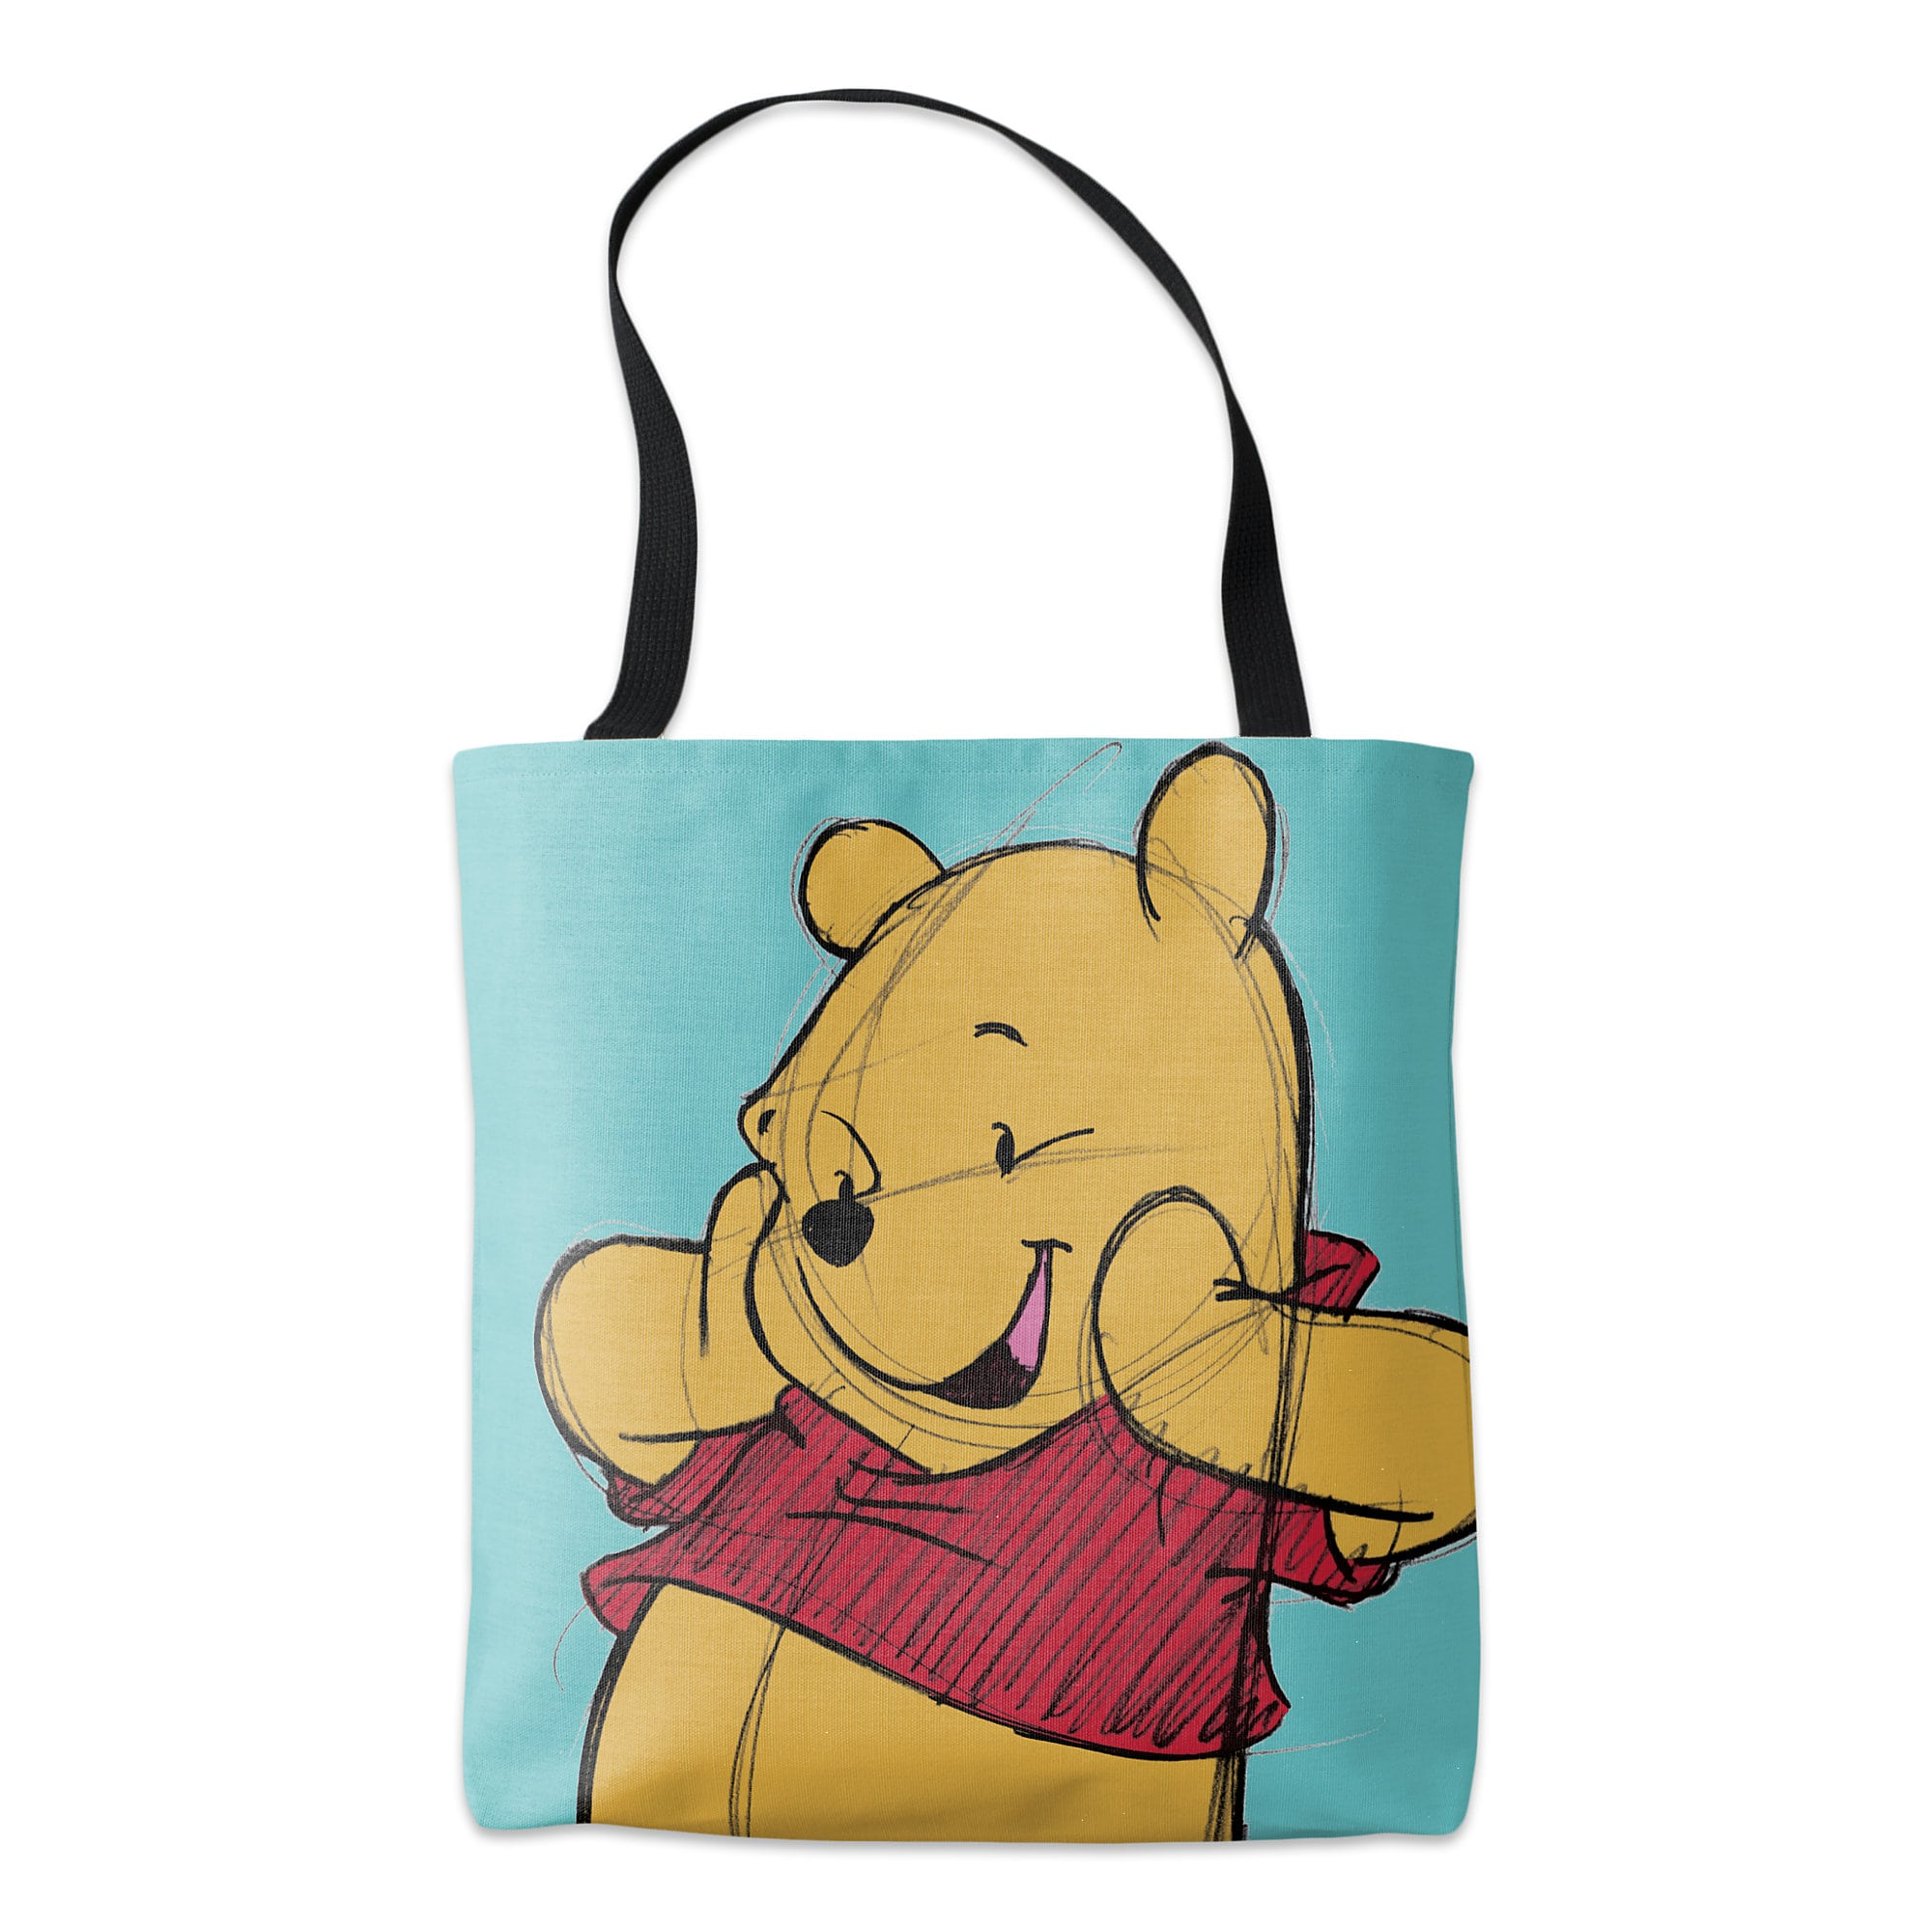 Winnie the Pooh Sketch Tote - Customizable